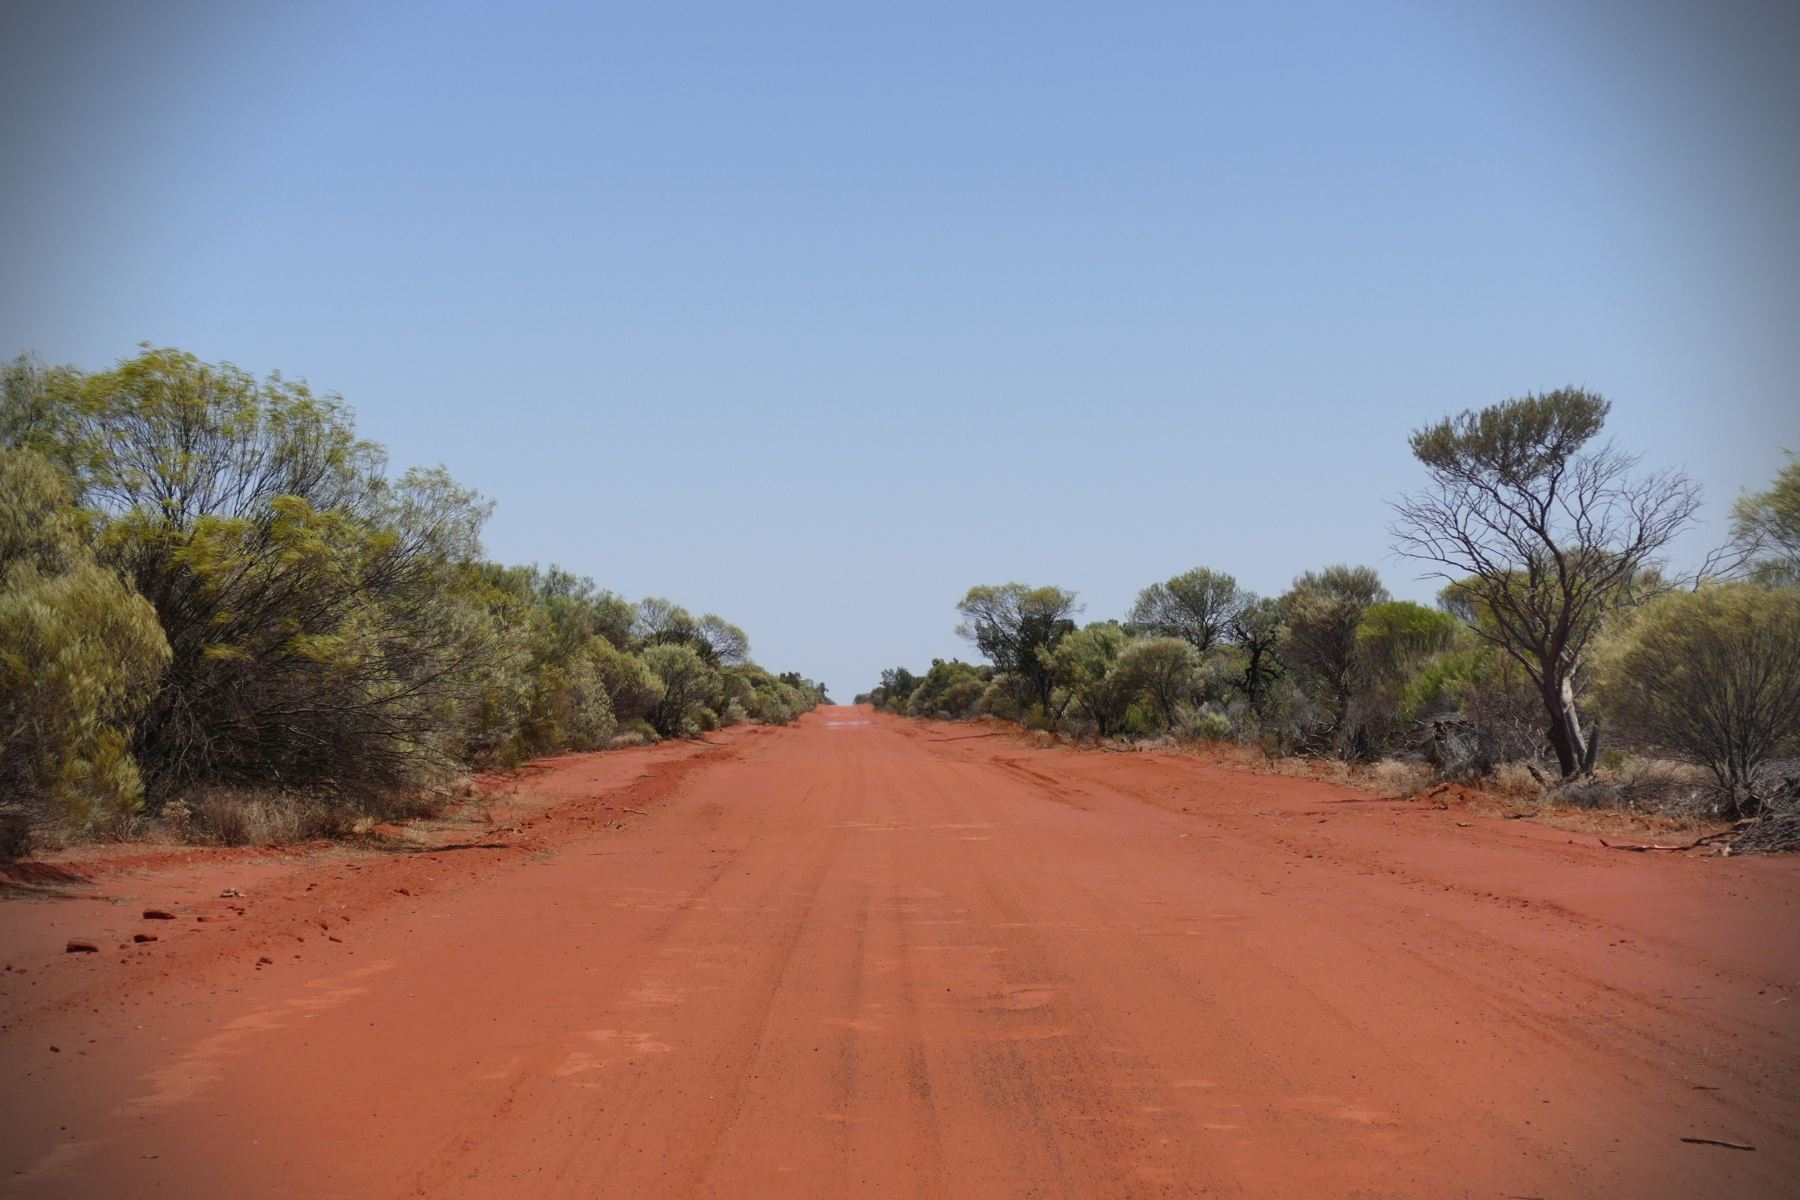 Green trees and red roads permeate the Australian interior. Noah Strycker